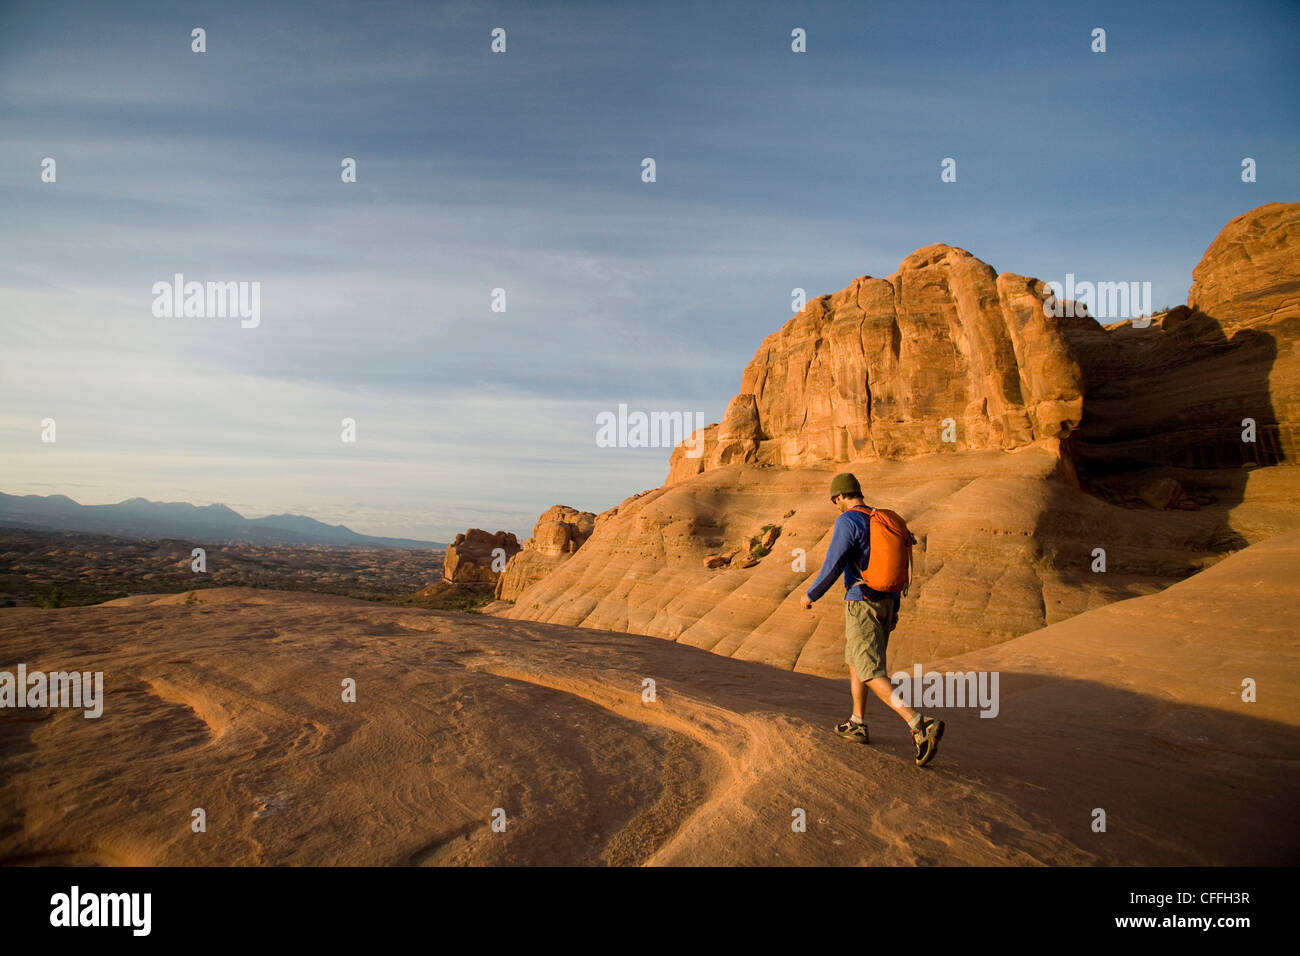 Young man hiking in Arches National Park near Moab, Utah. - Stock Image